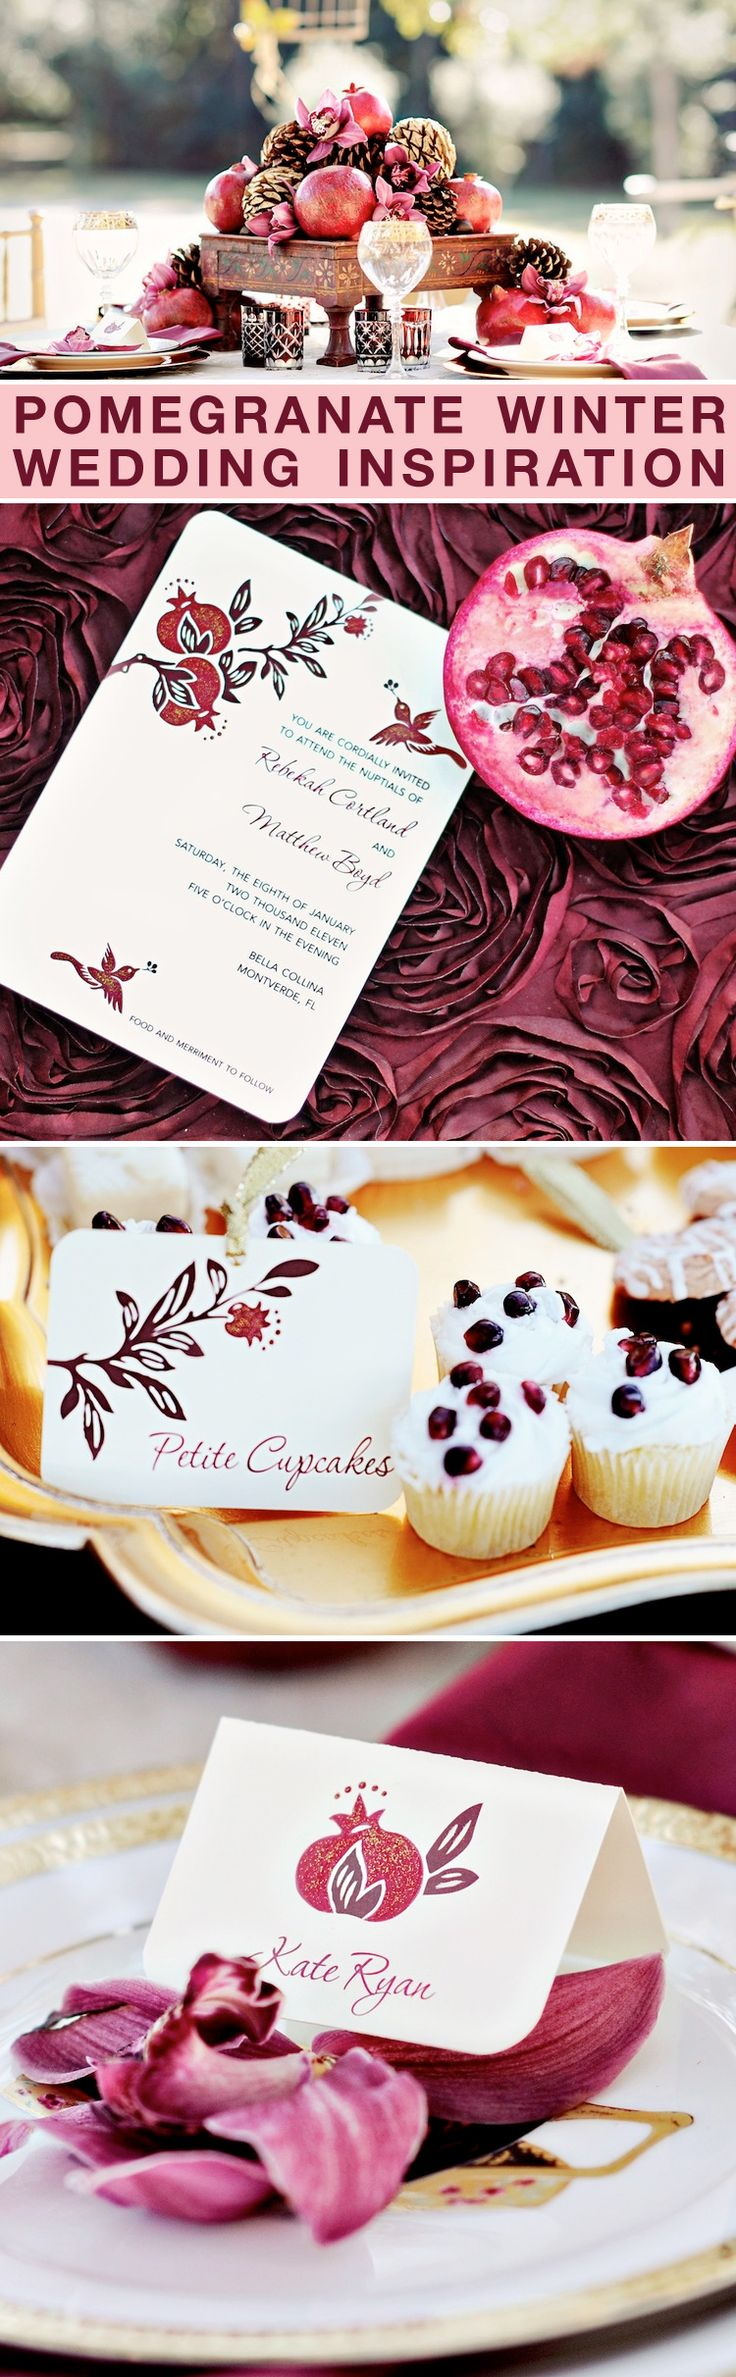 Pomegranate Winter Wedding Inspiration - the perfect red color for weddings during the holiday season